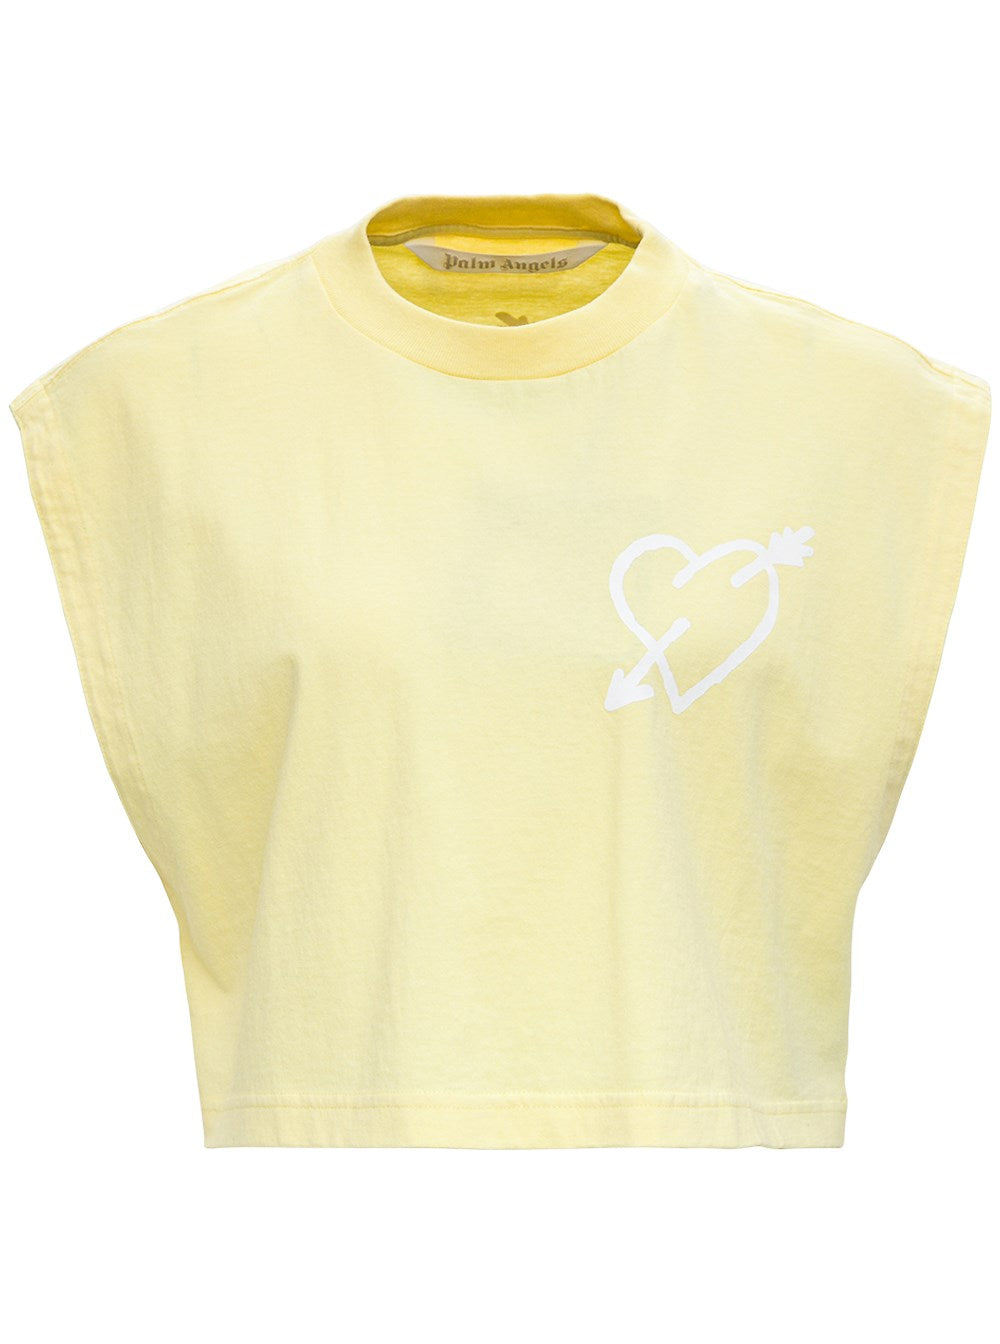 Palm Angels PALM ANGELS HEART PRINT CROPPED T